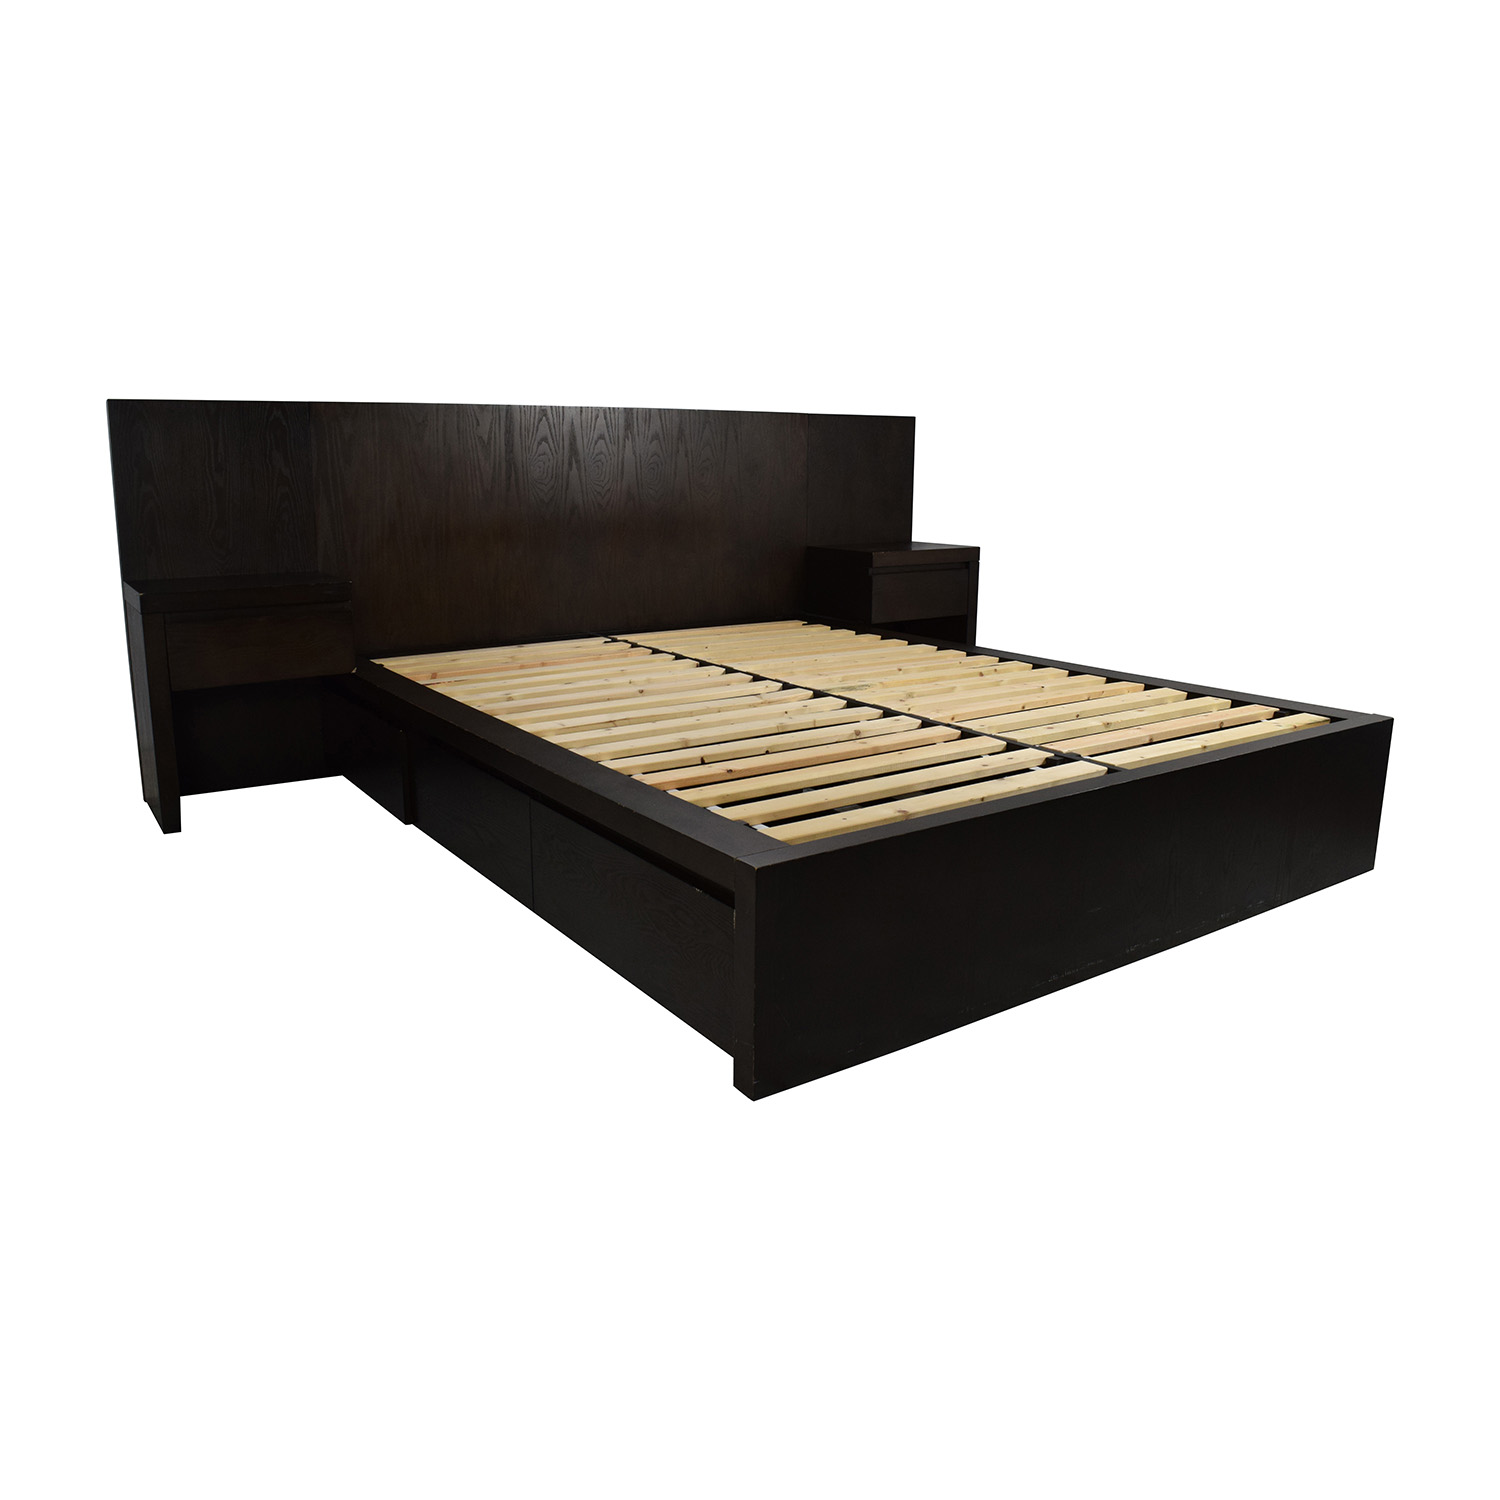 Queen storage platform bed -  West Elm West Elm Queen Size Storage Platform Bed Frame Discount